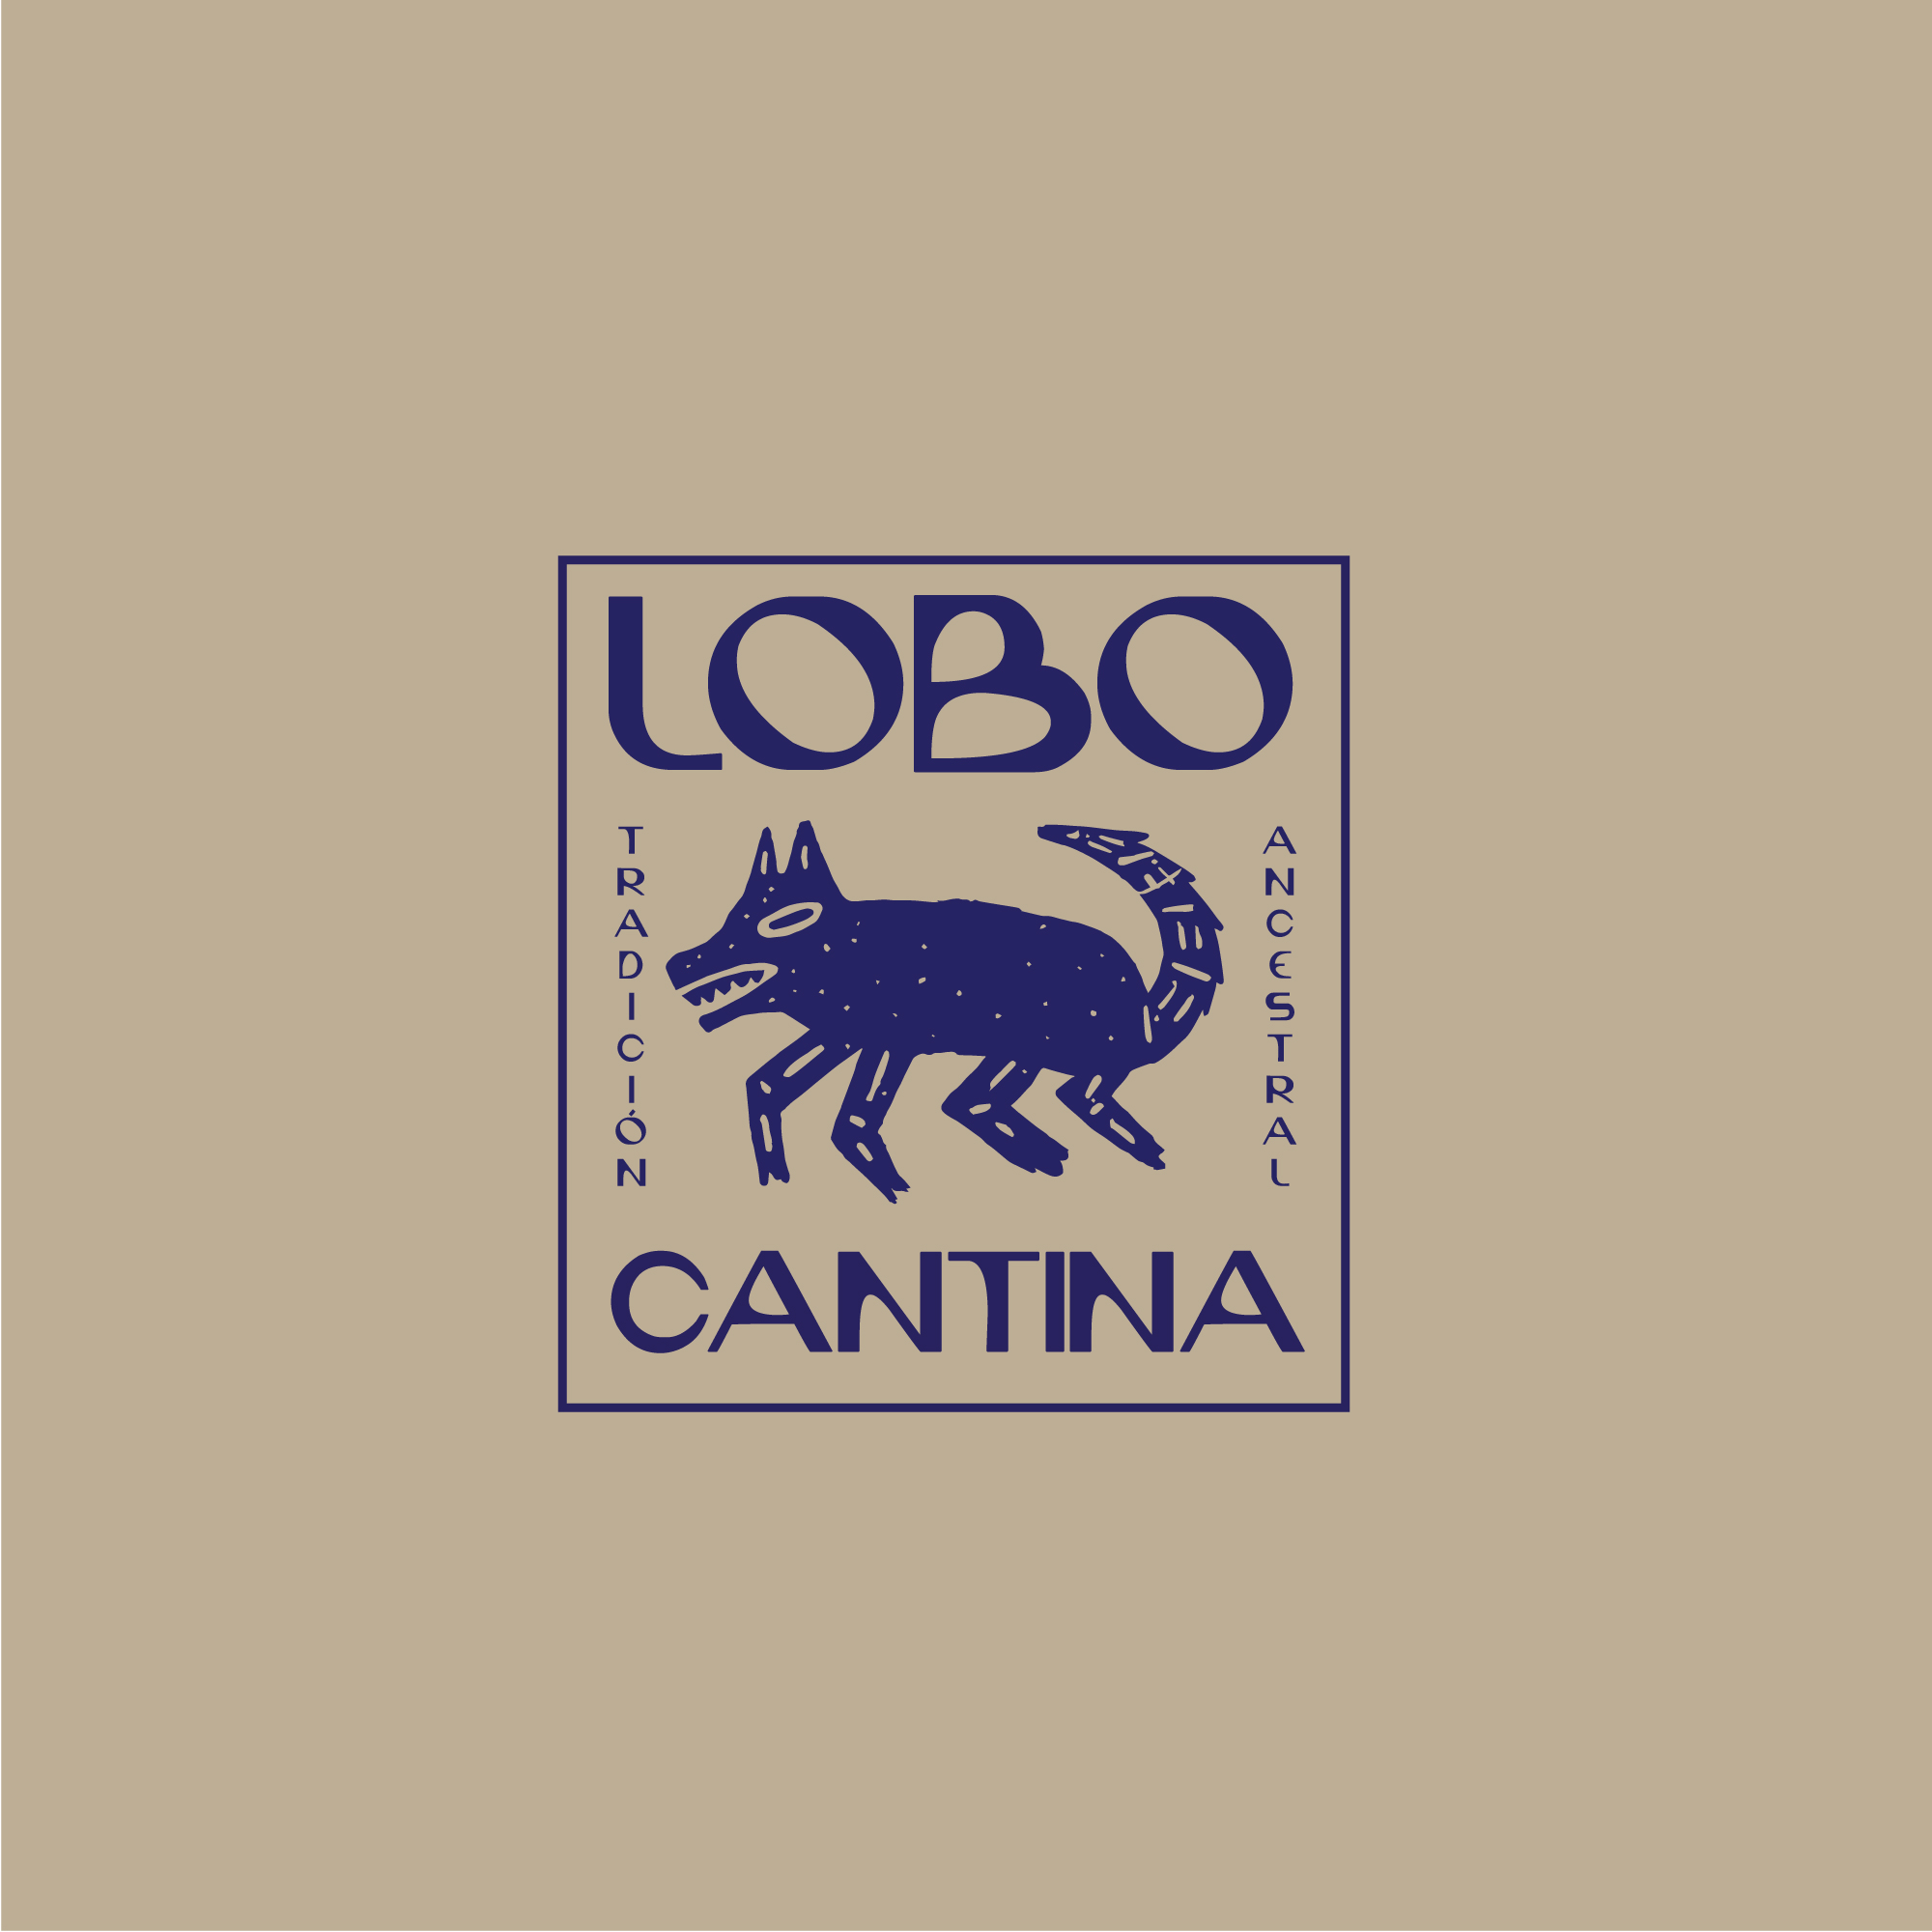 Design and Illustration for Lobo Cantina Traditional Mexican Grill